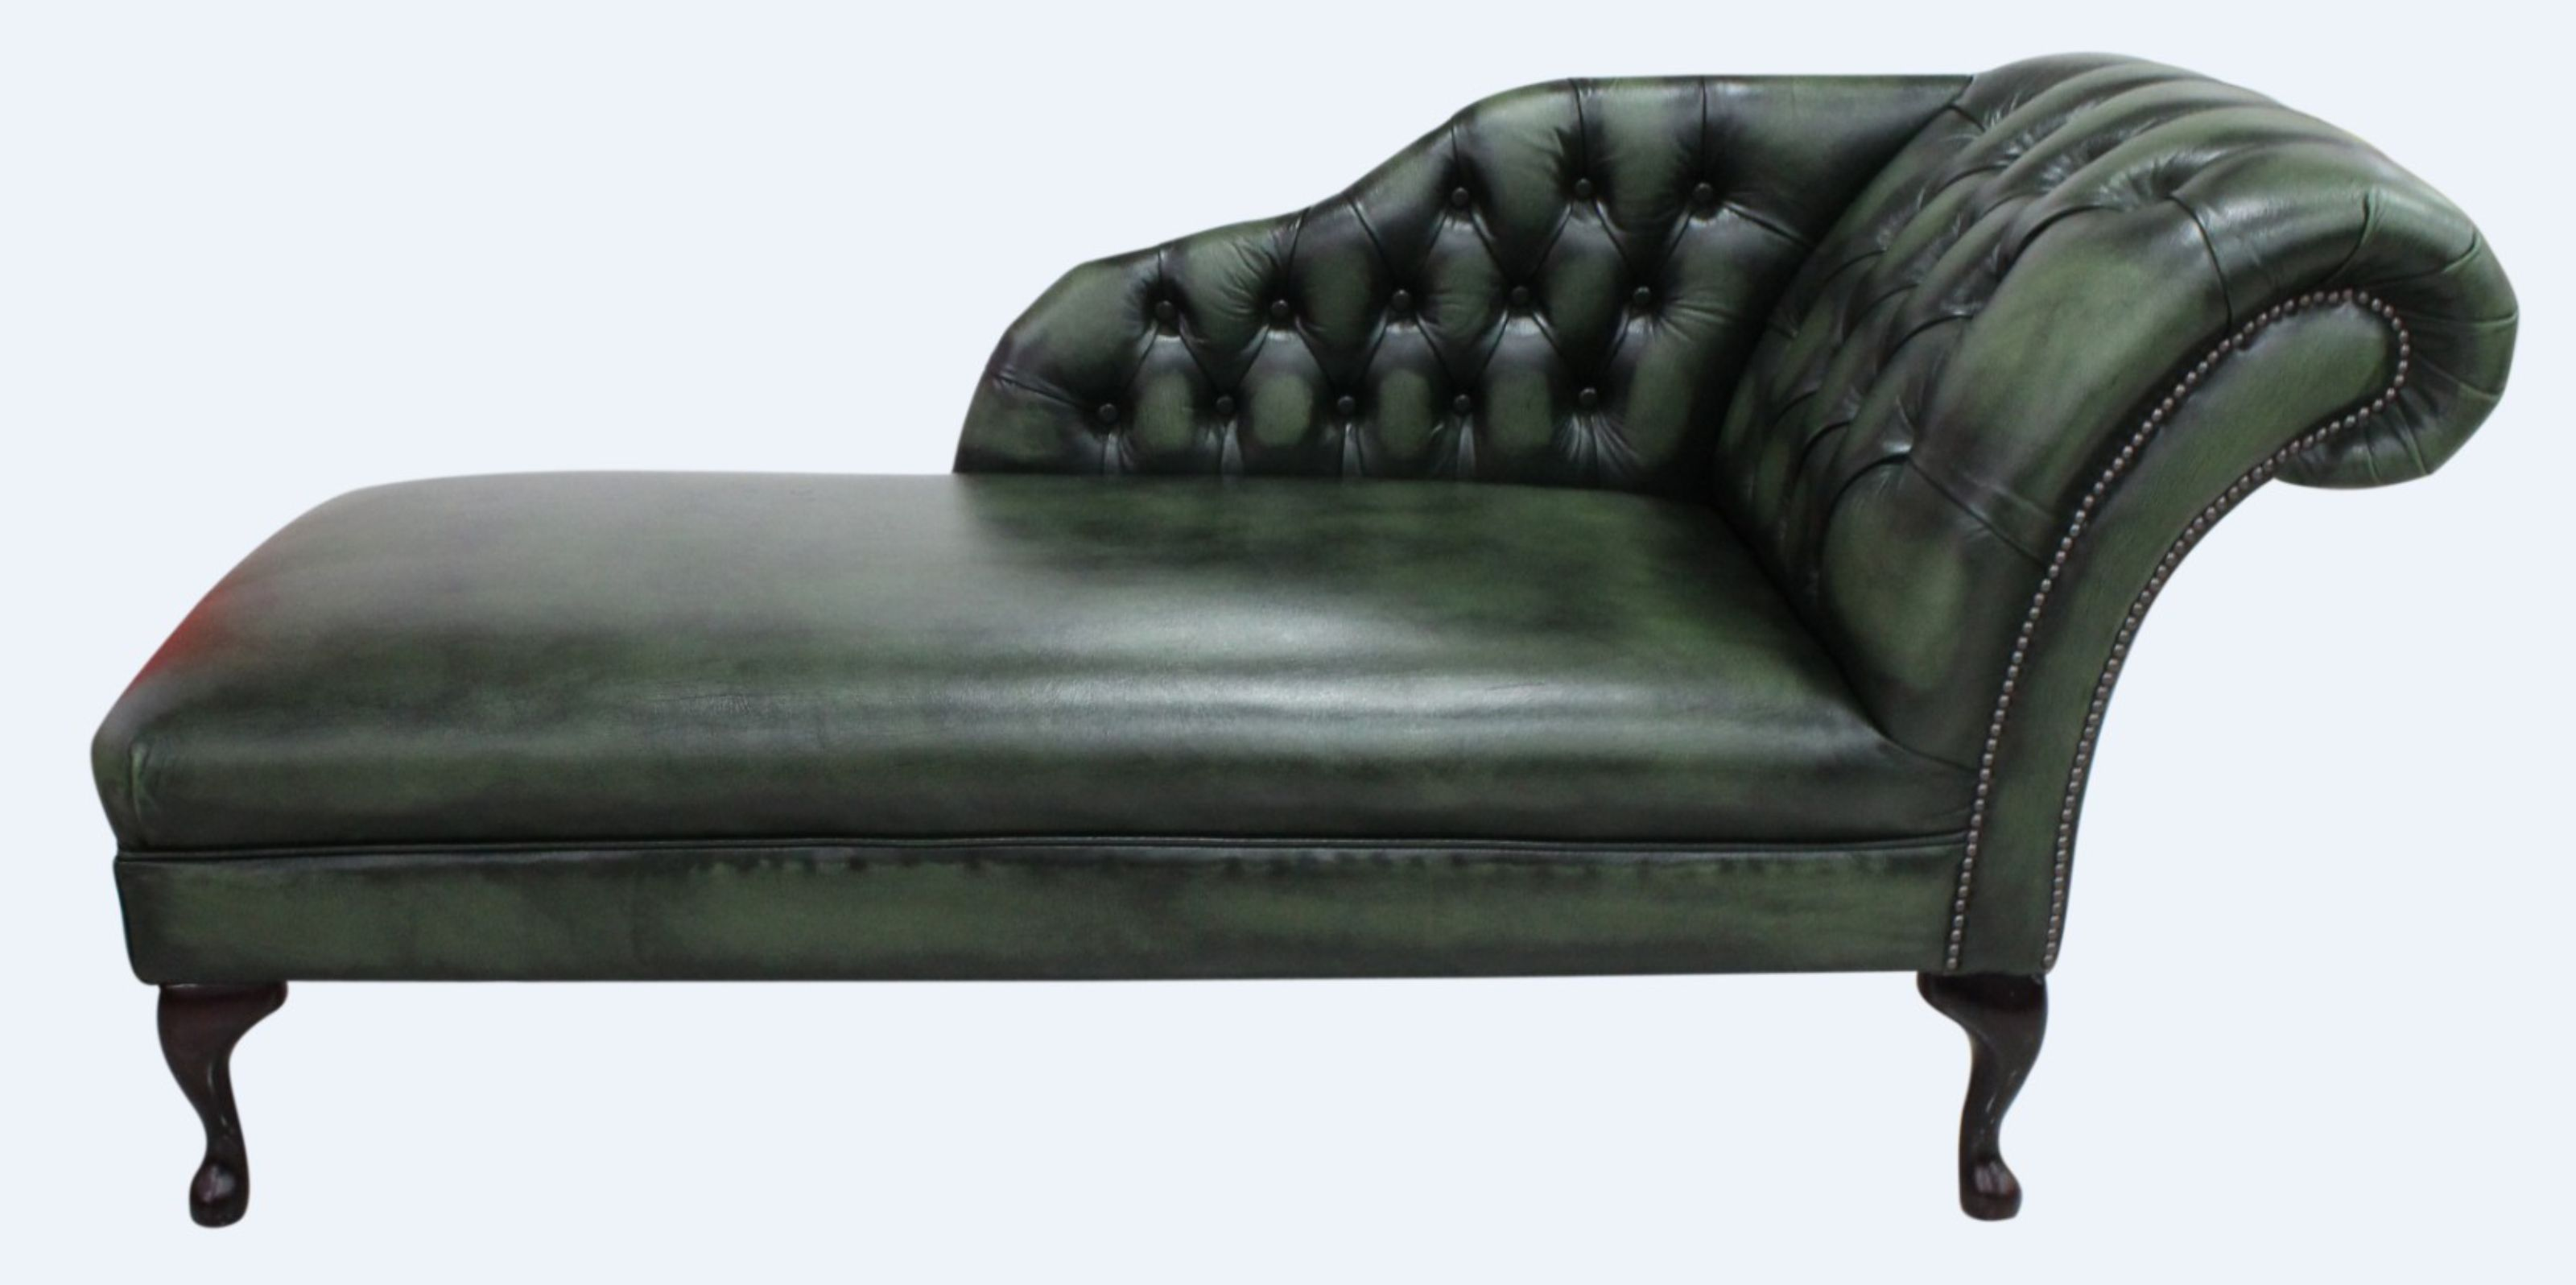 - Chesterfield Leather Chaise Lounge Day Bed Antique Green